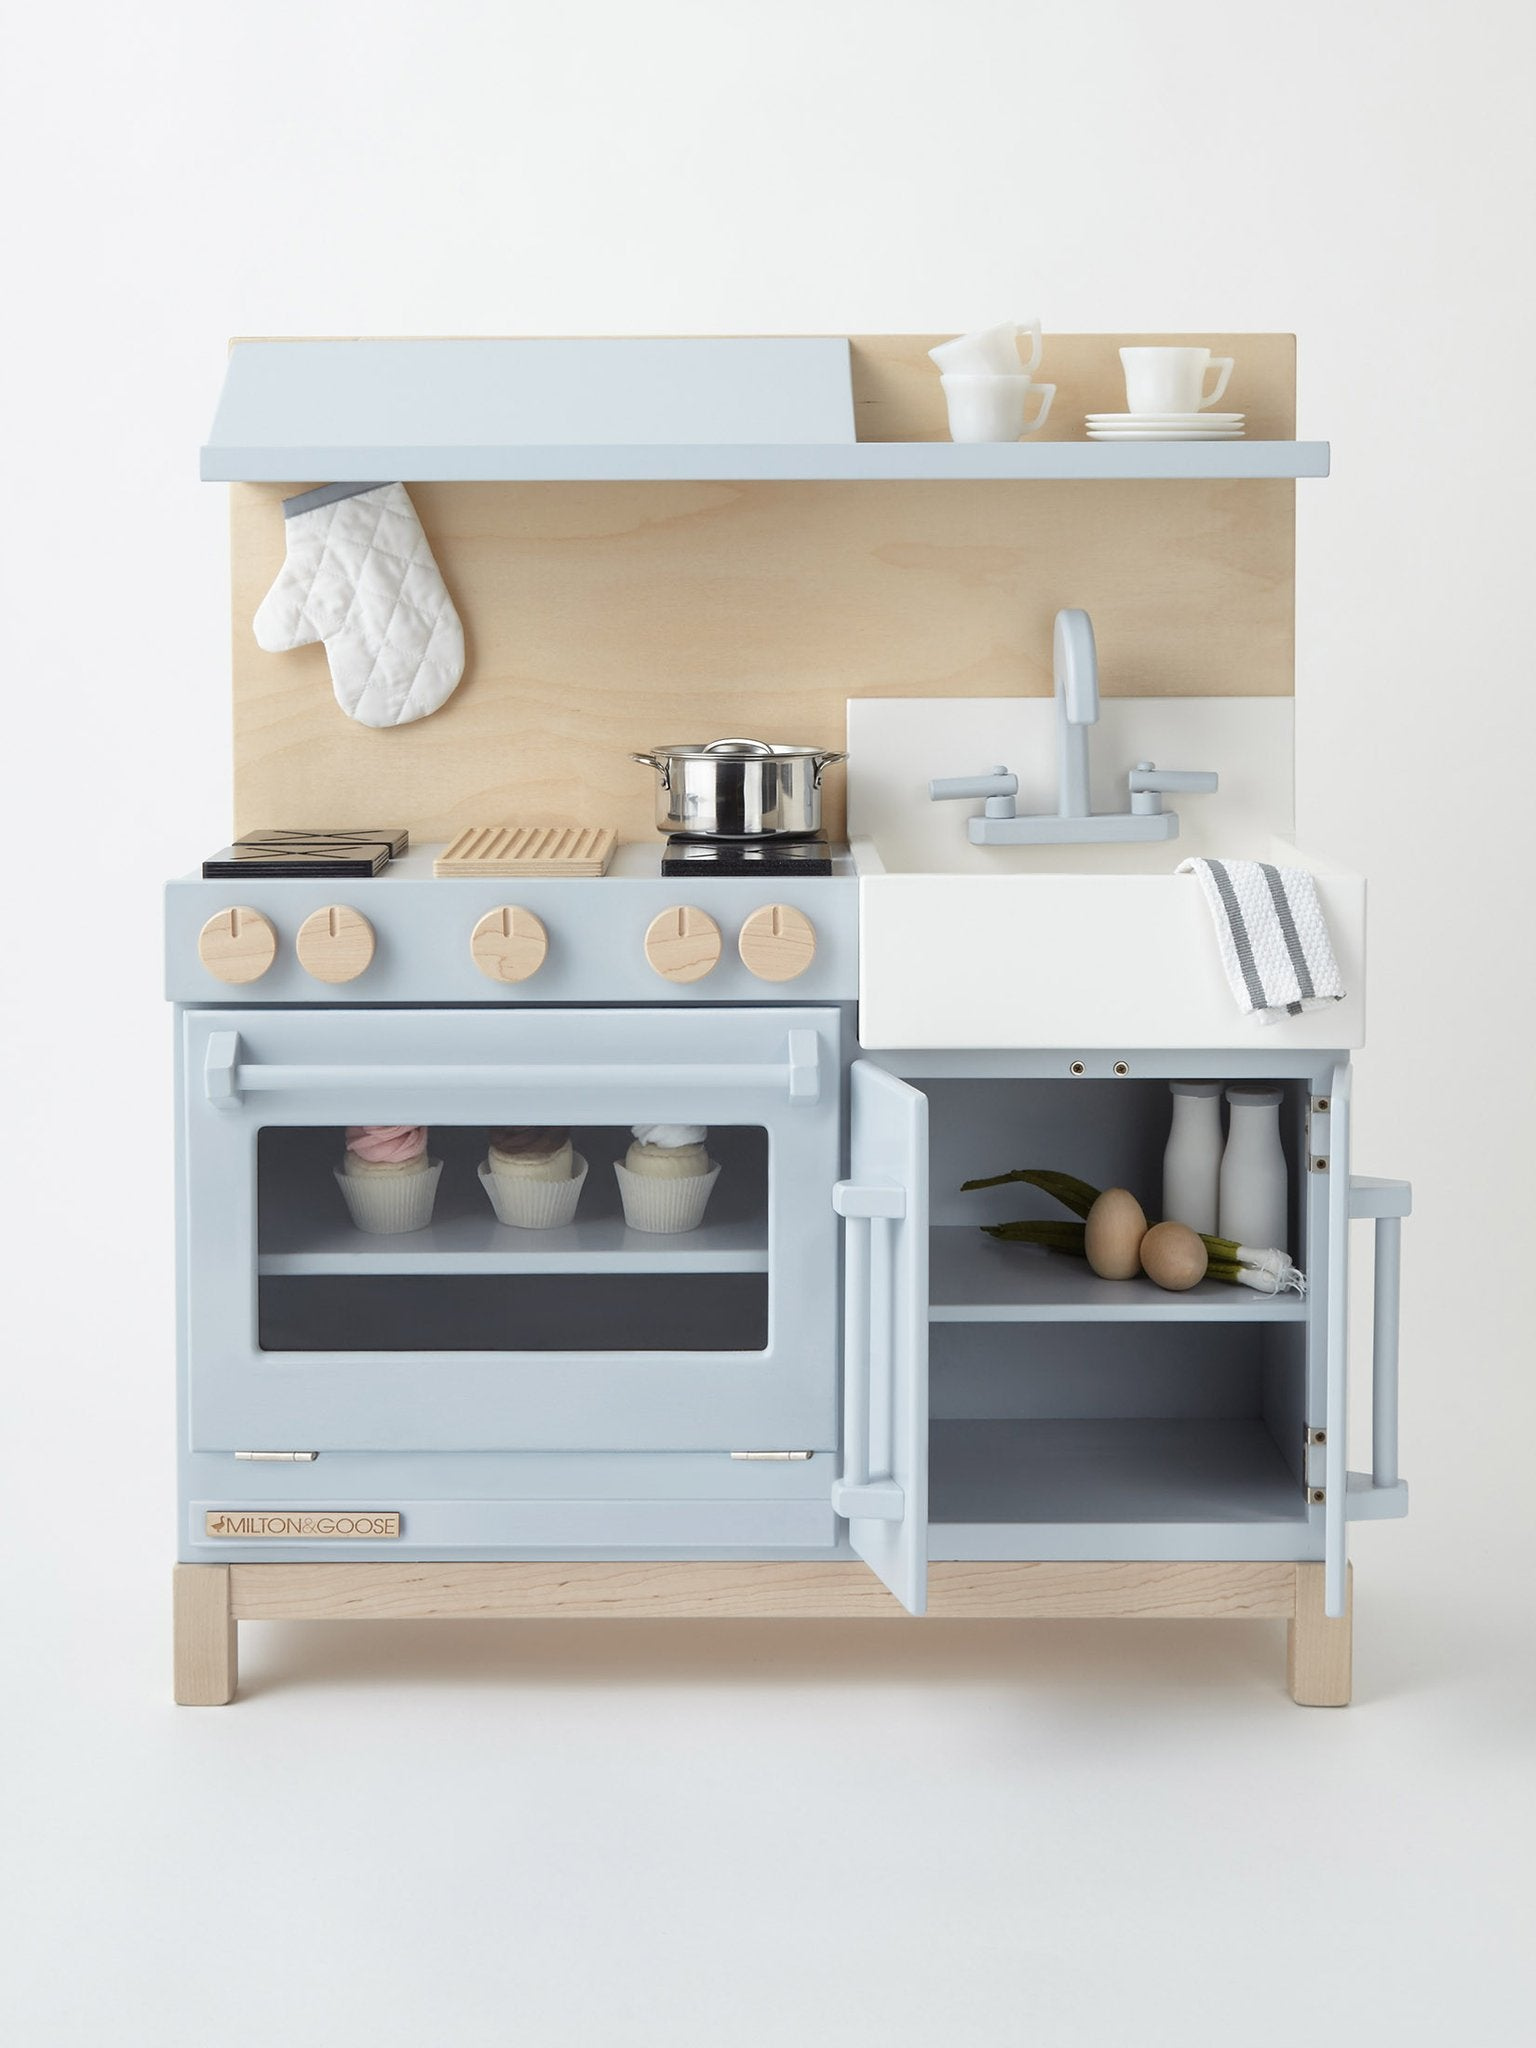 milton goose classic play kitchen on dlk designlifekidscom - Play Kitchen